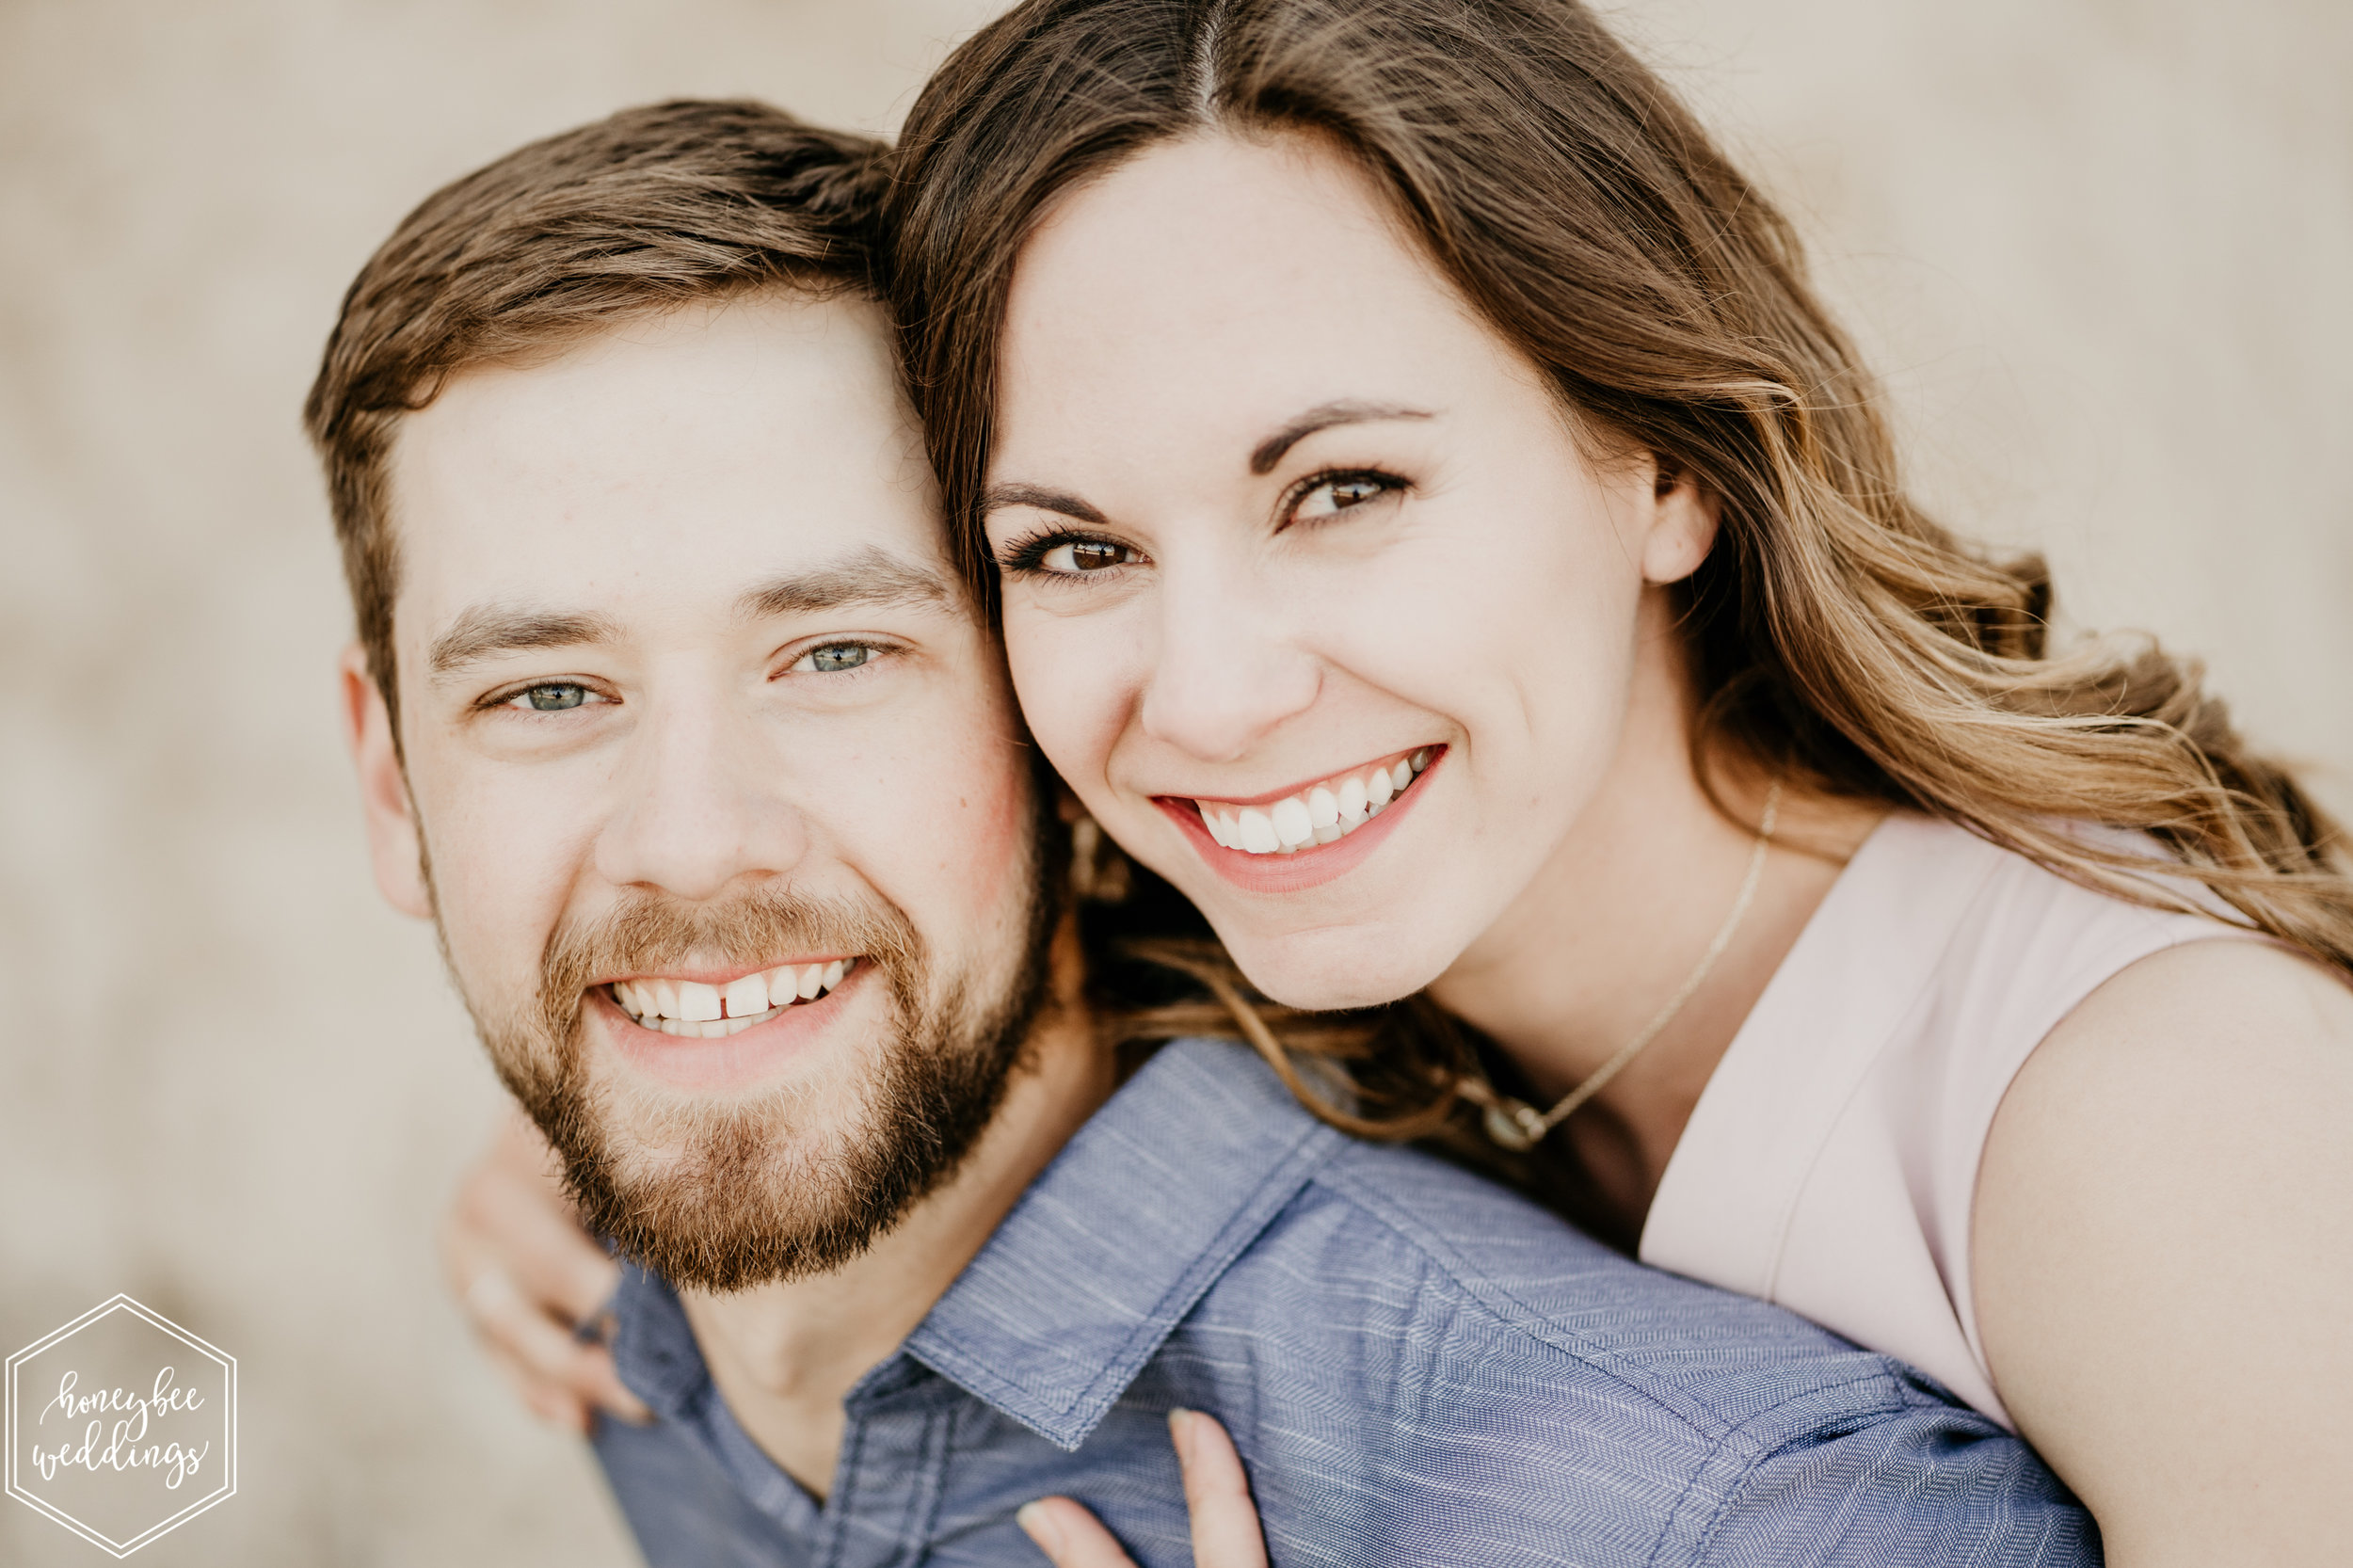 159Montana Wedding Photographer_Polson Engagement Session_Carrie & Matt_Honeybee Weddings_May 11, 2019-318.jpg